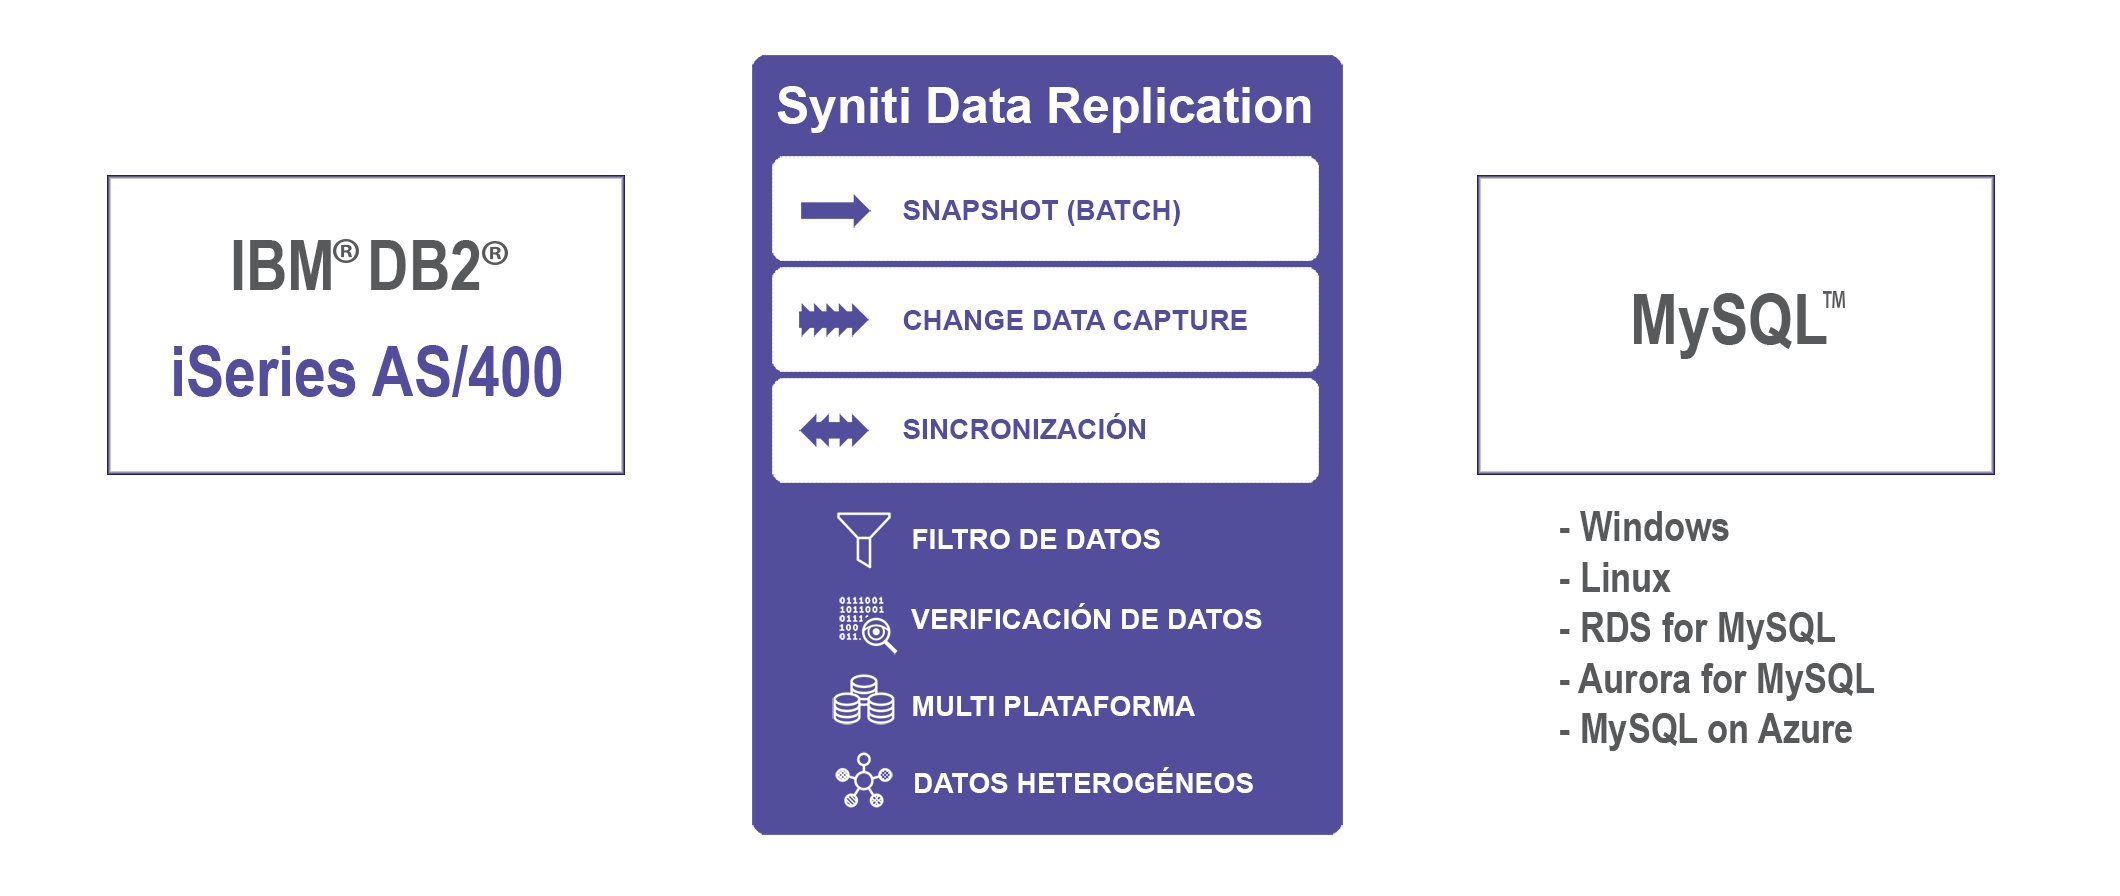 Replicación de datos IBM Db2i iSeries a MySQL